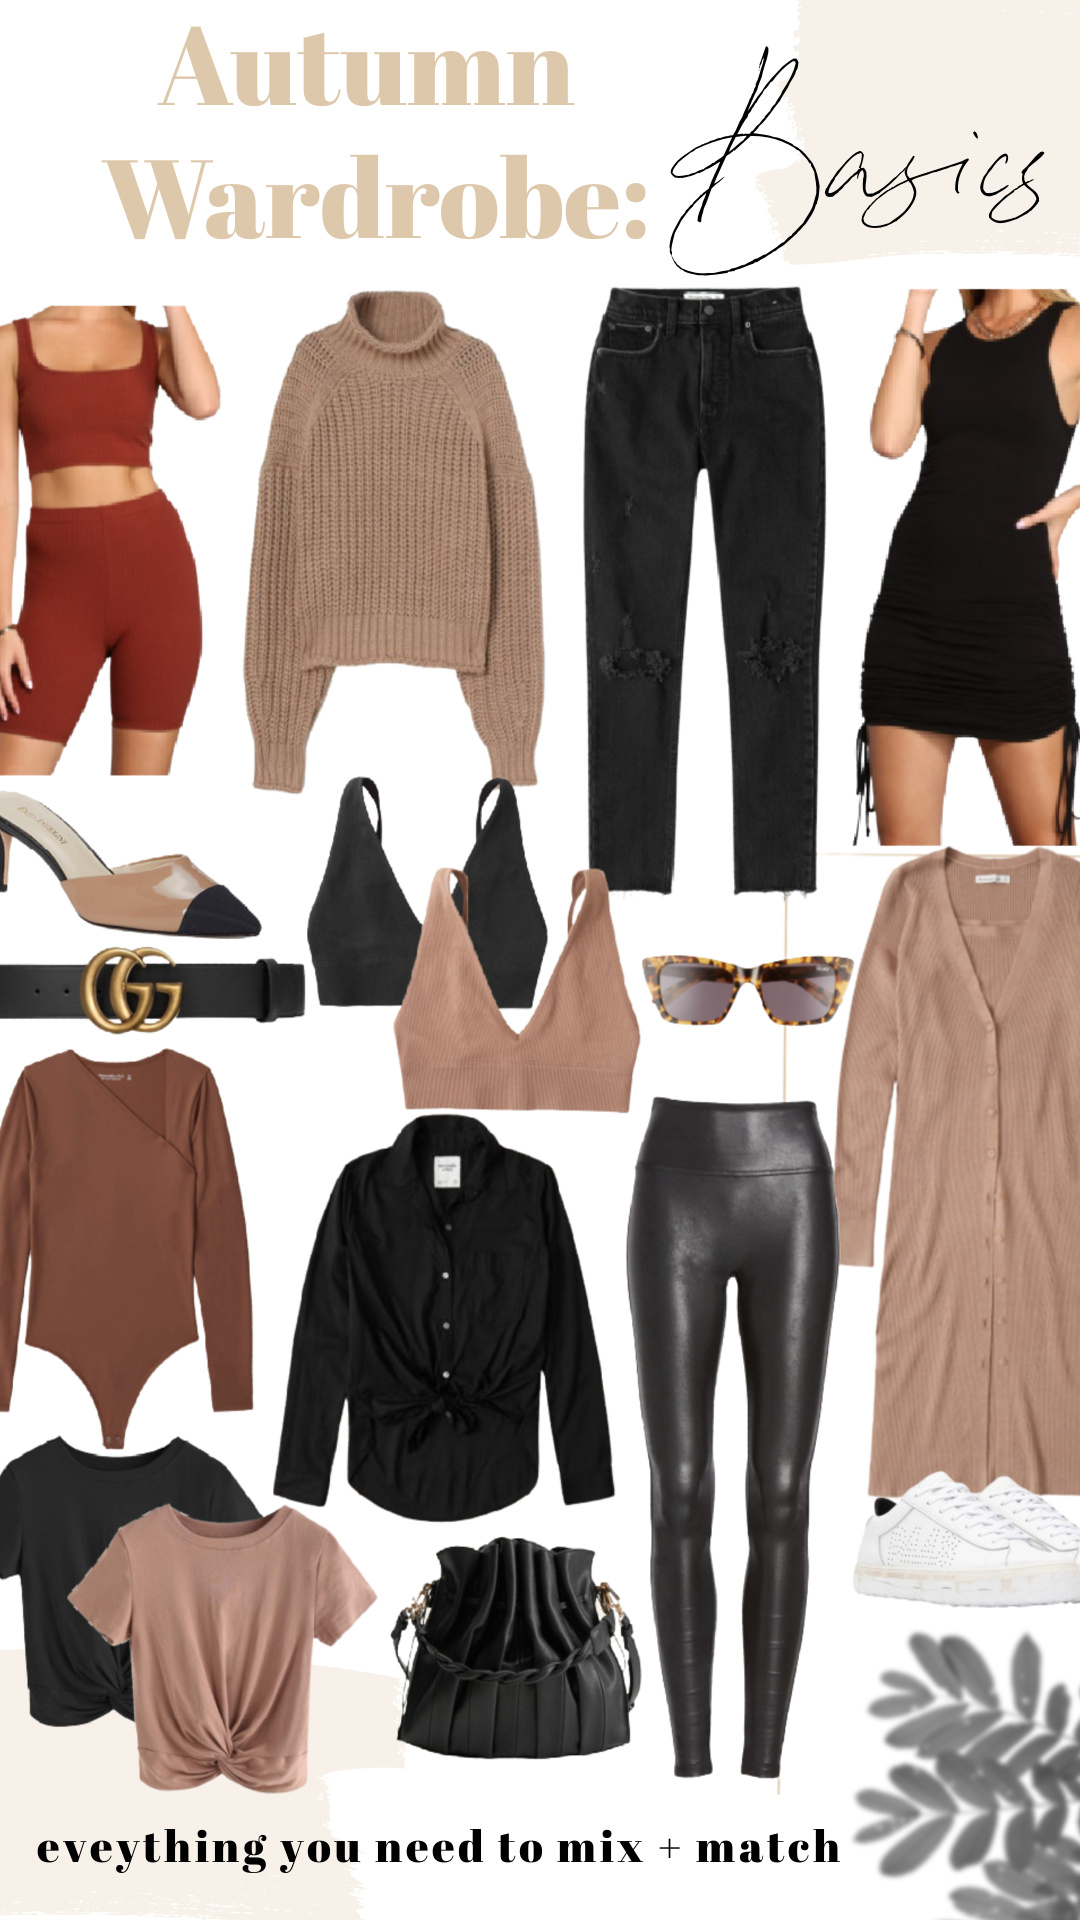 AUTUMN WARDROBE BASICS